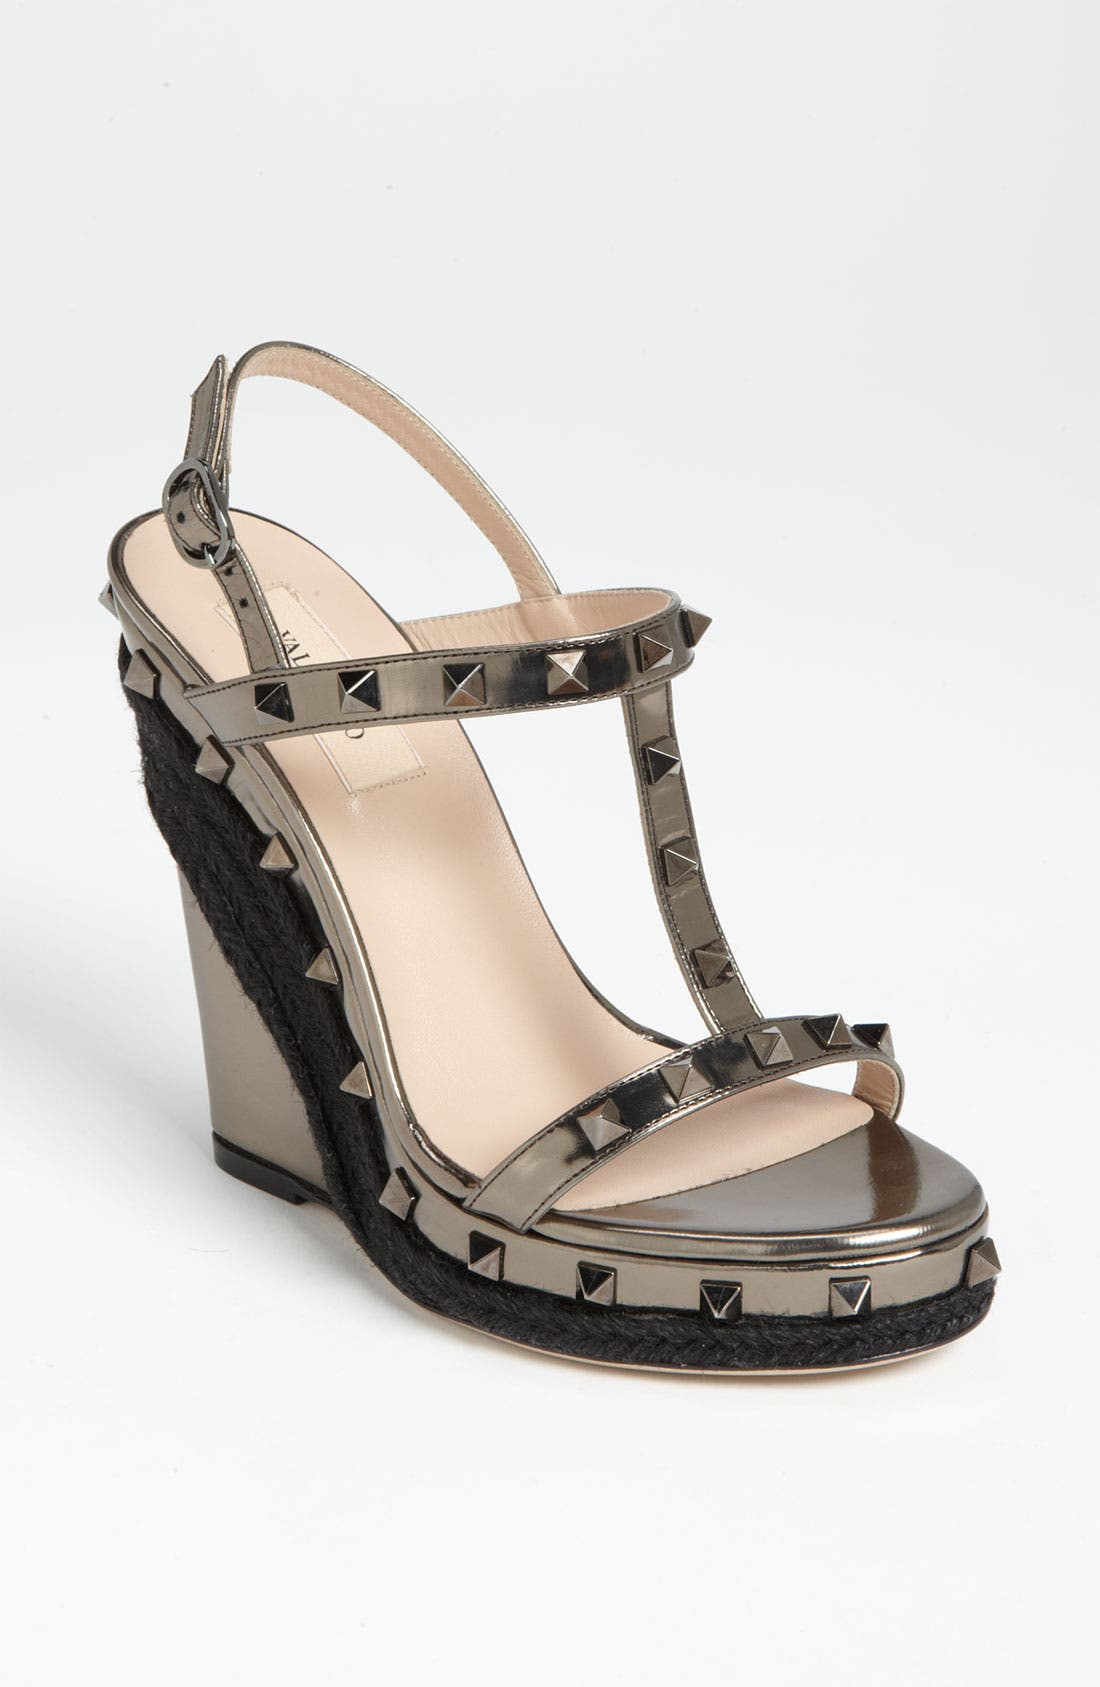 Alternate Image 1 Selected - VALENTINO GARAVANI 'Rockstud' Wedge Sandal